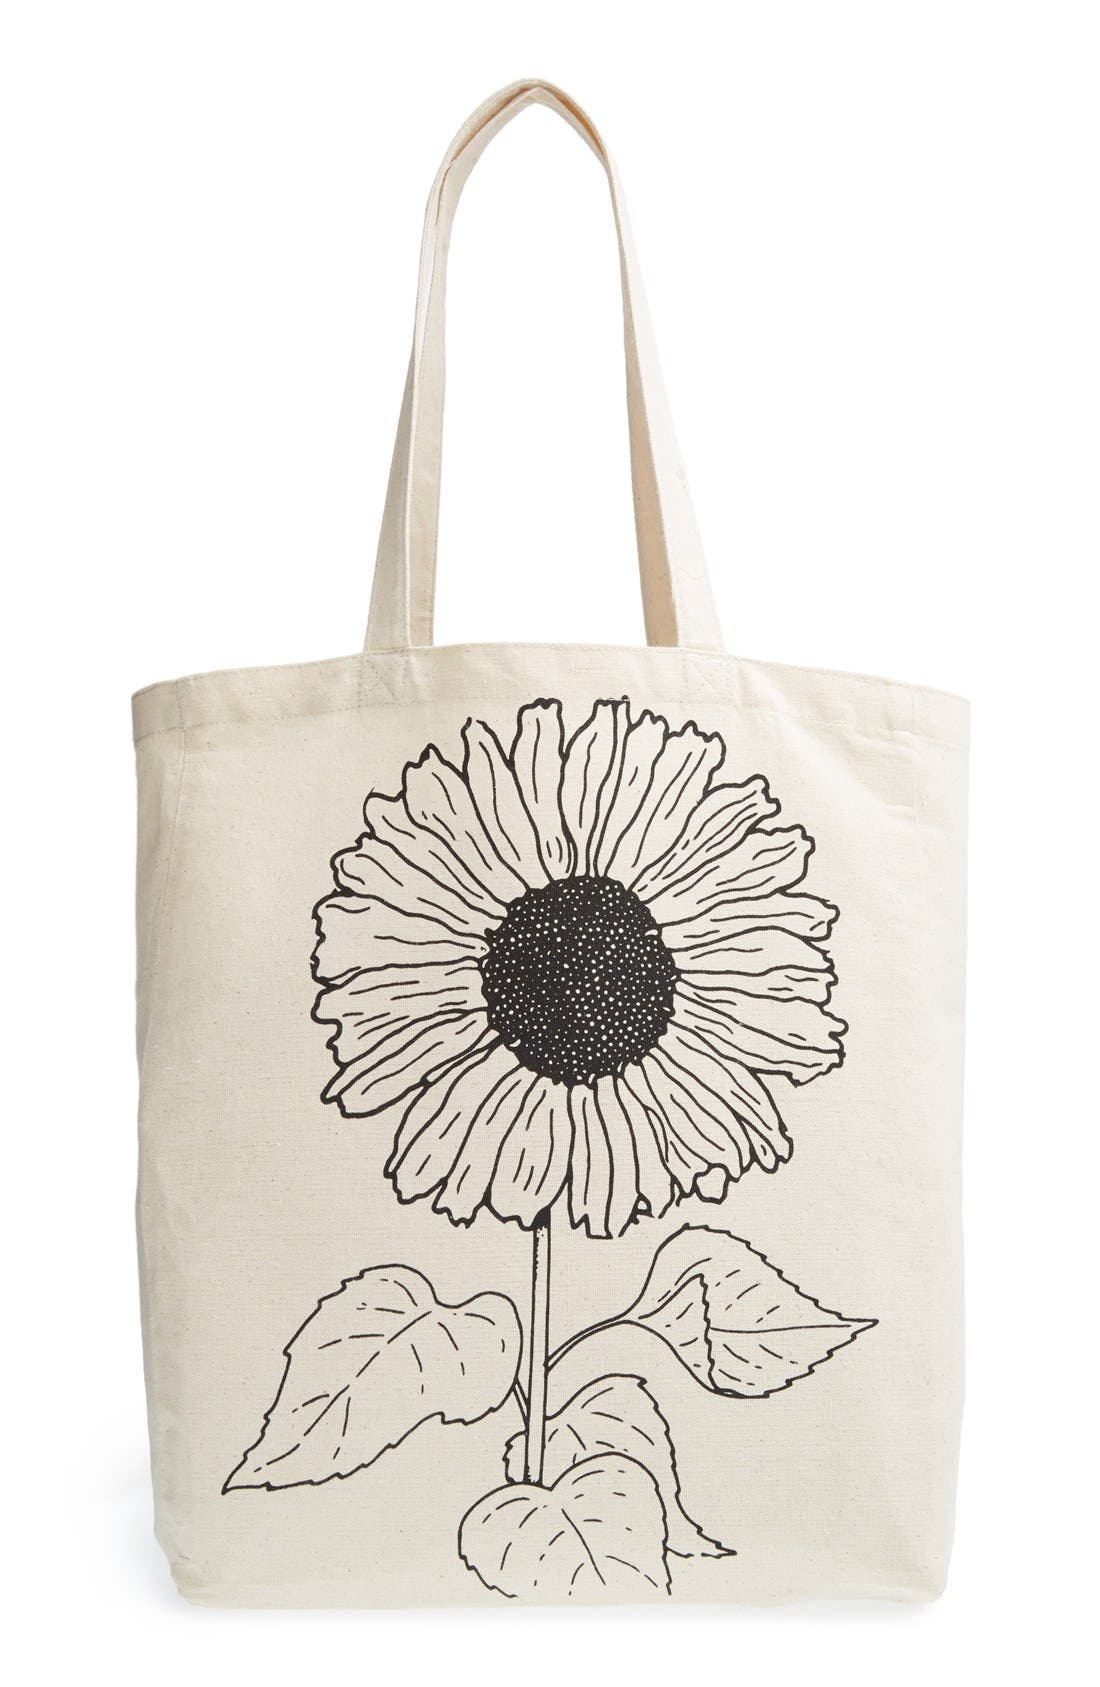 Alternate Image 1 Selected - Tri-Coastal Design 'Sunflower' Canvas Tote